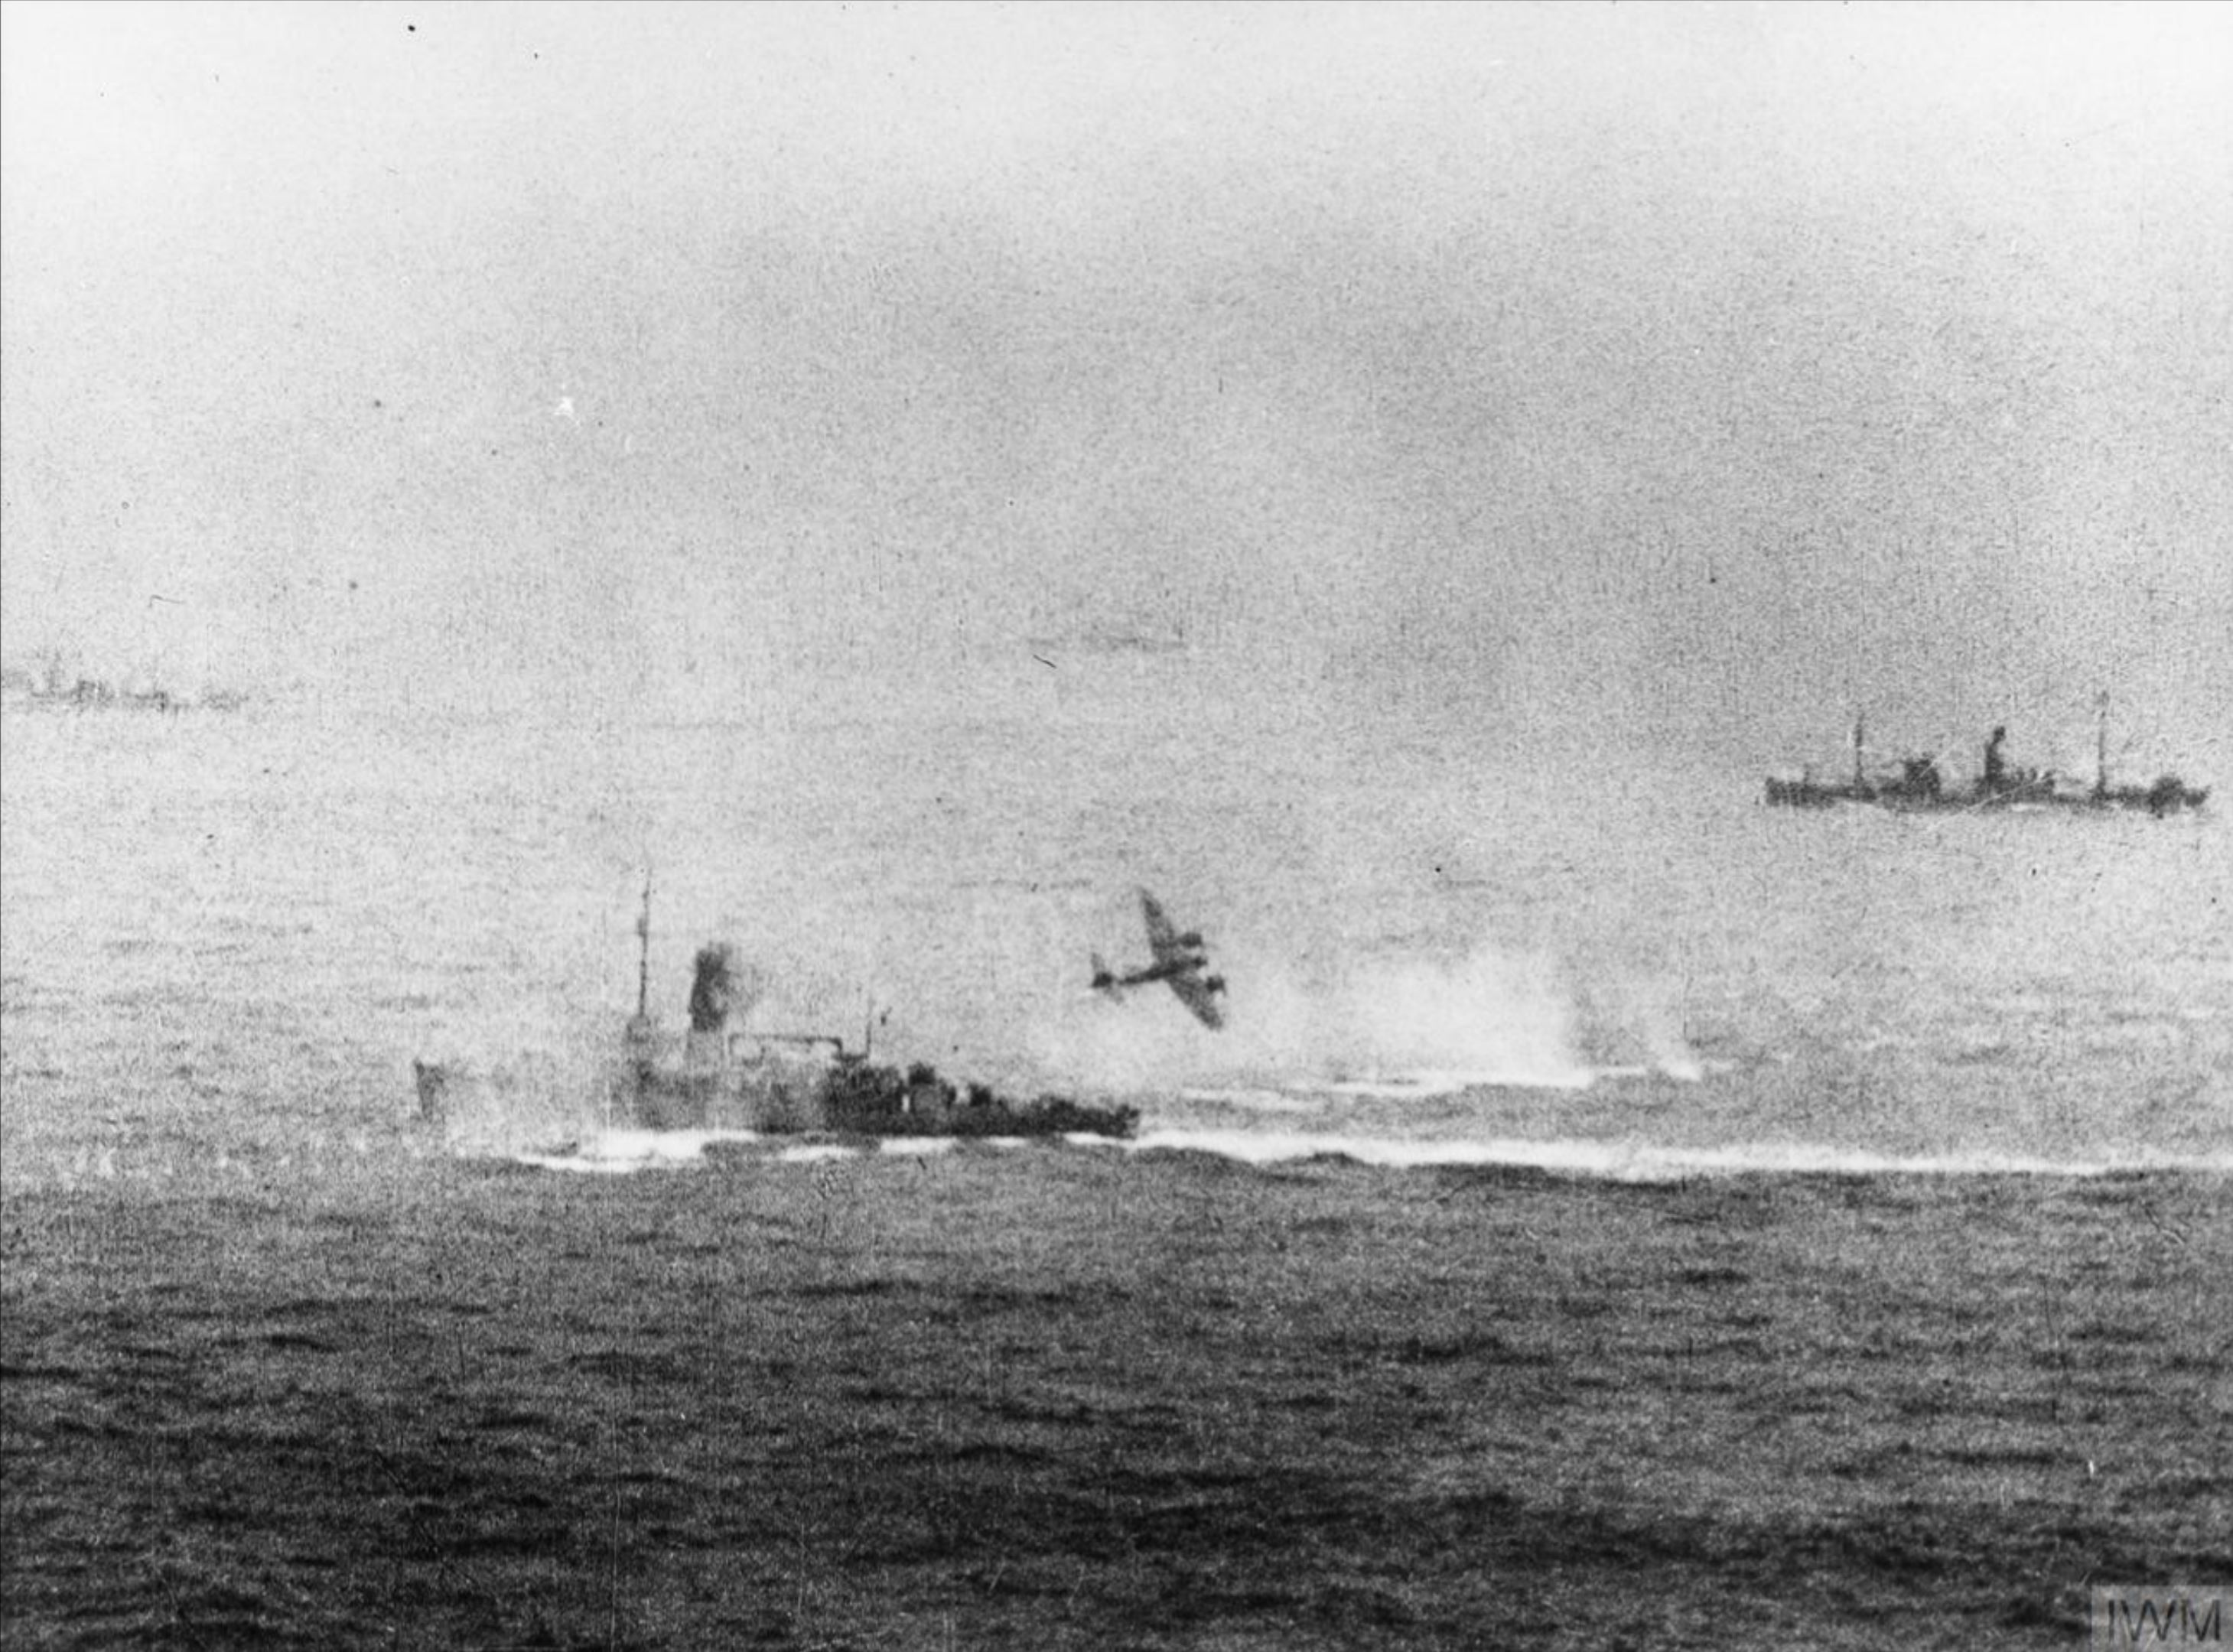 North Coates Strike Wing Beaufighters VIFs attack a Kriegsmarine minesweeper off Texel Holland IWM C3506